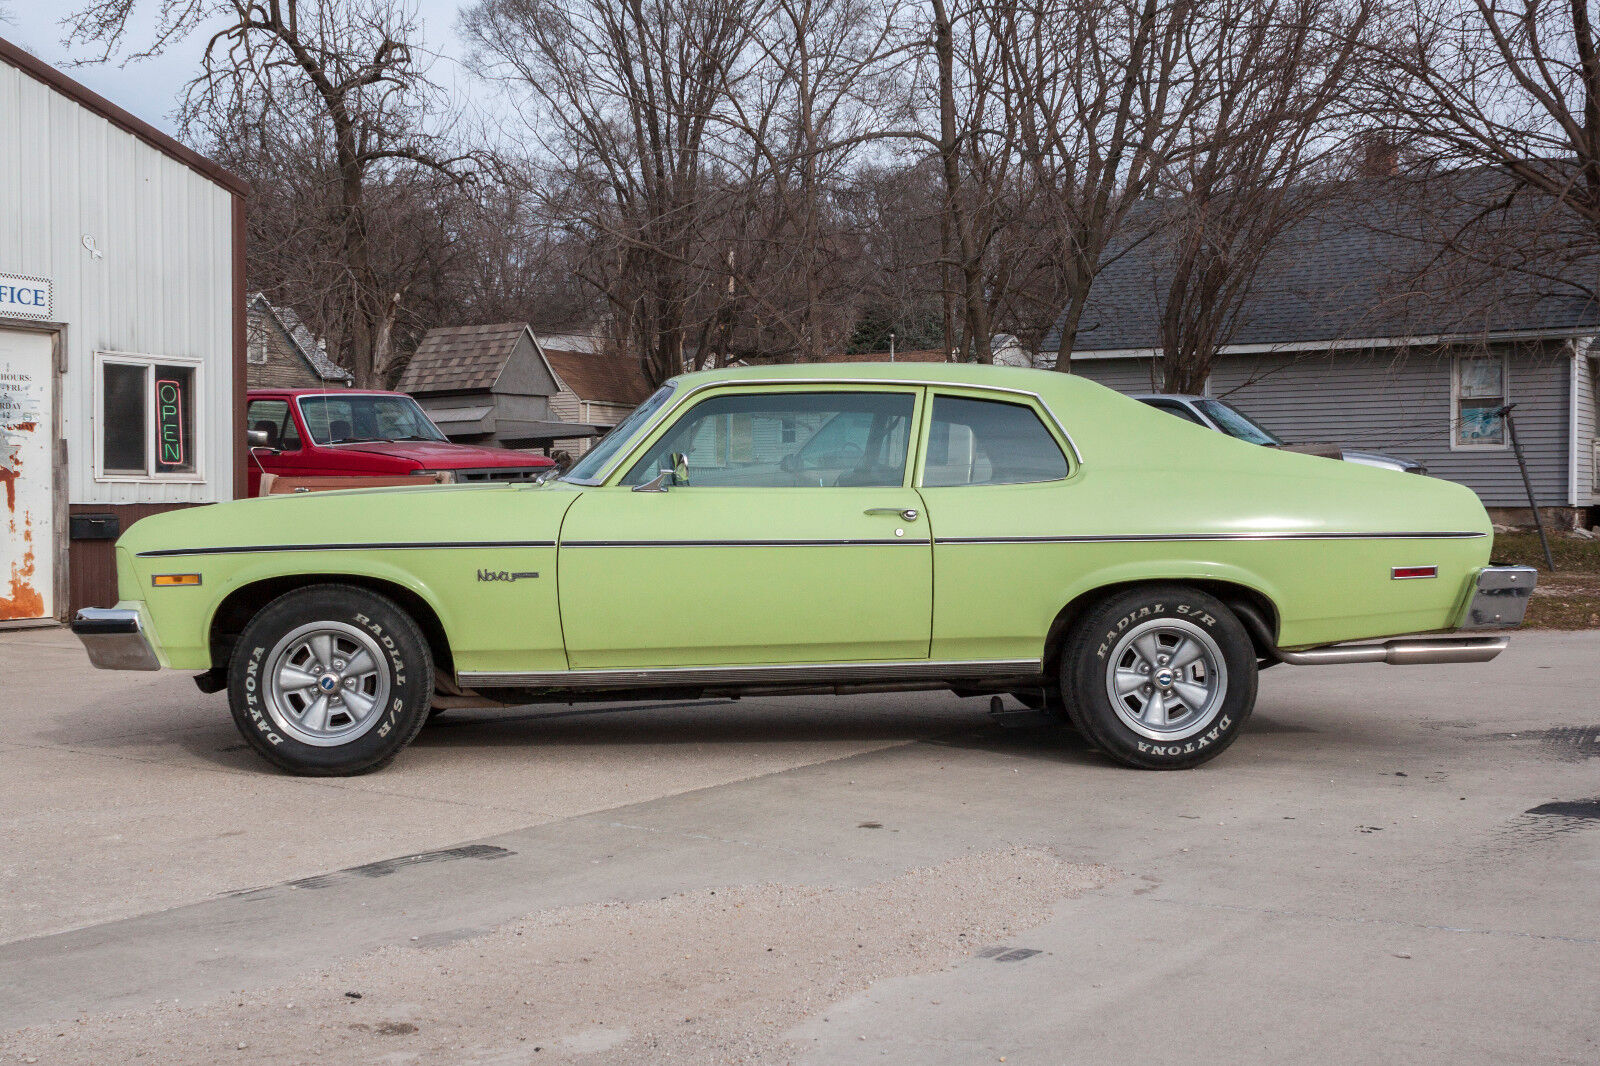 1974 chevy nova 2 door unrestored lime yellow muscle car hot rod barn find used chevrolet. Black Bedroom Furniture Sets. Home Design Ideas